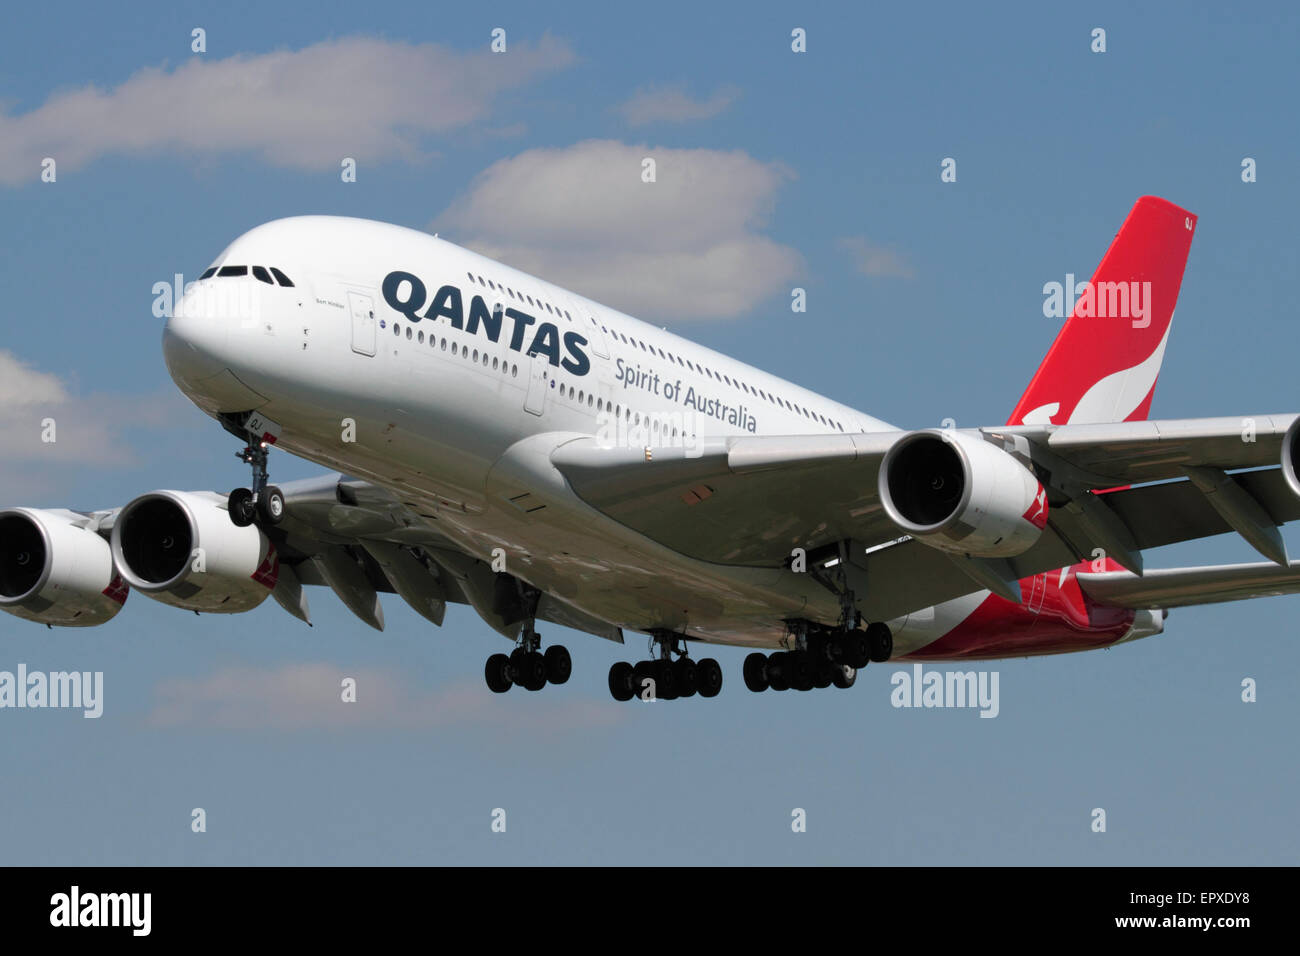 Long haul air travel. Qantas Airbus A380-800 large modern double-decker airliner, known as the superjumbo, on approach - Stock Image